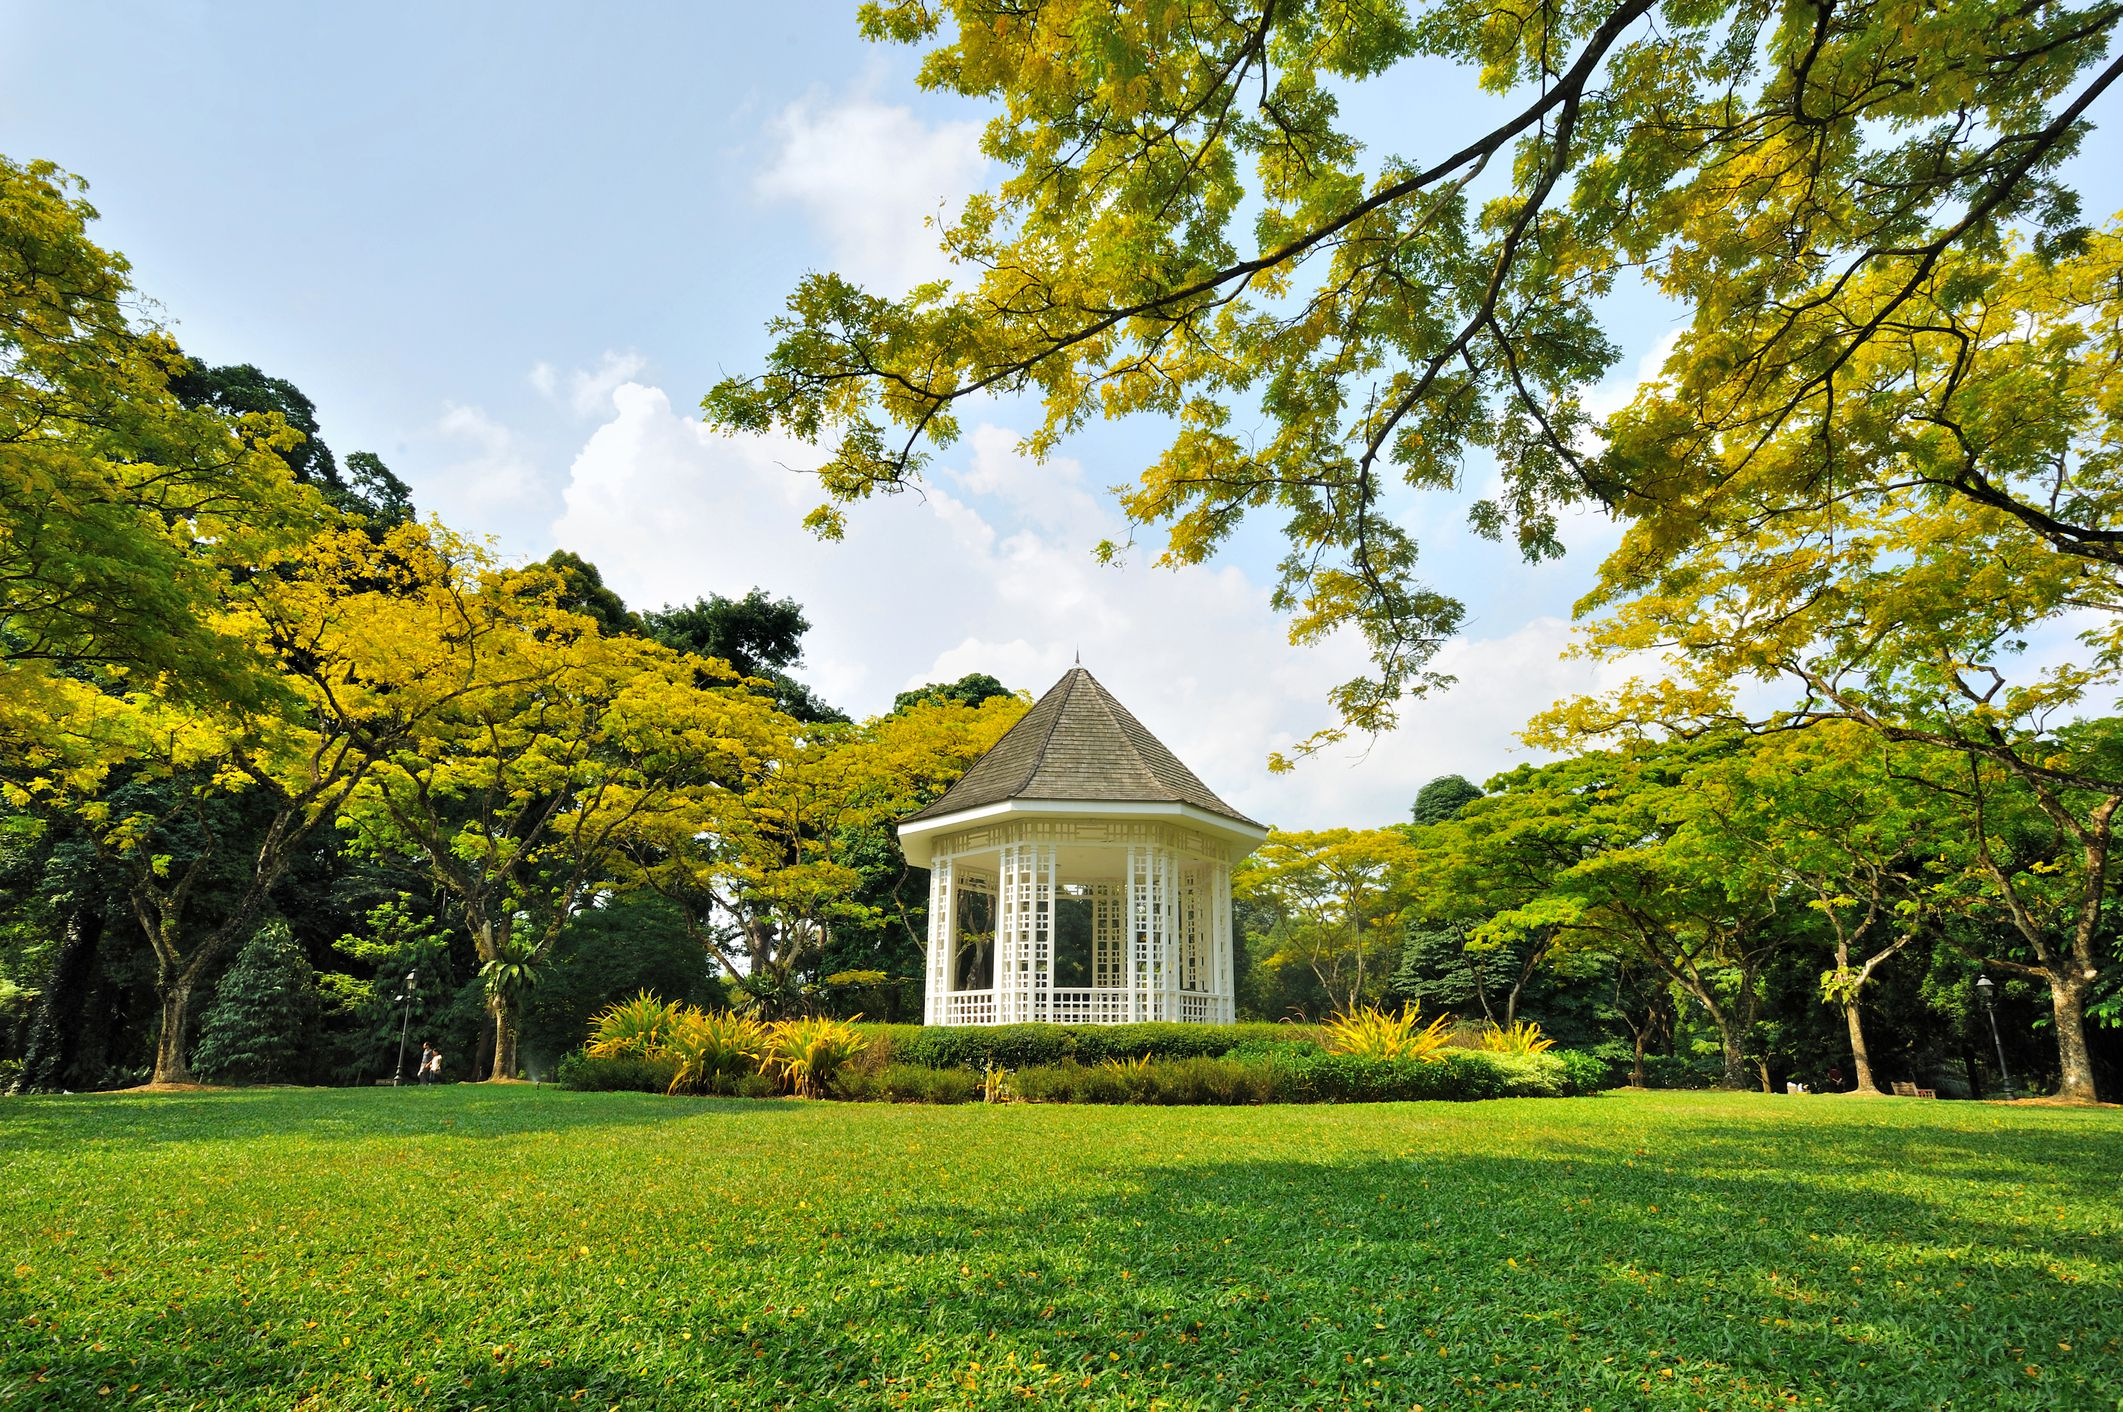 a gazebo and grassy space in the Singapore Botanic Gardens